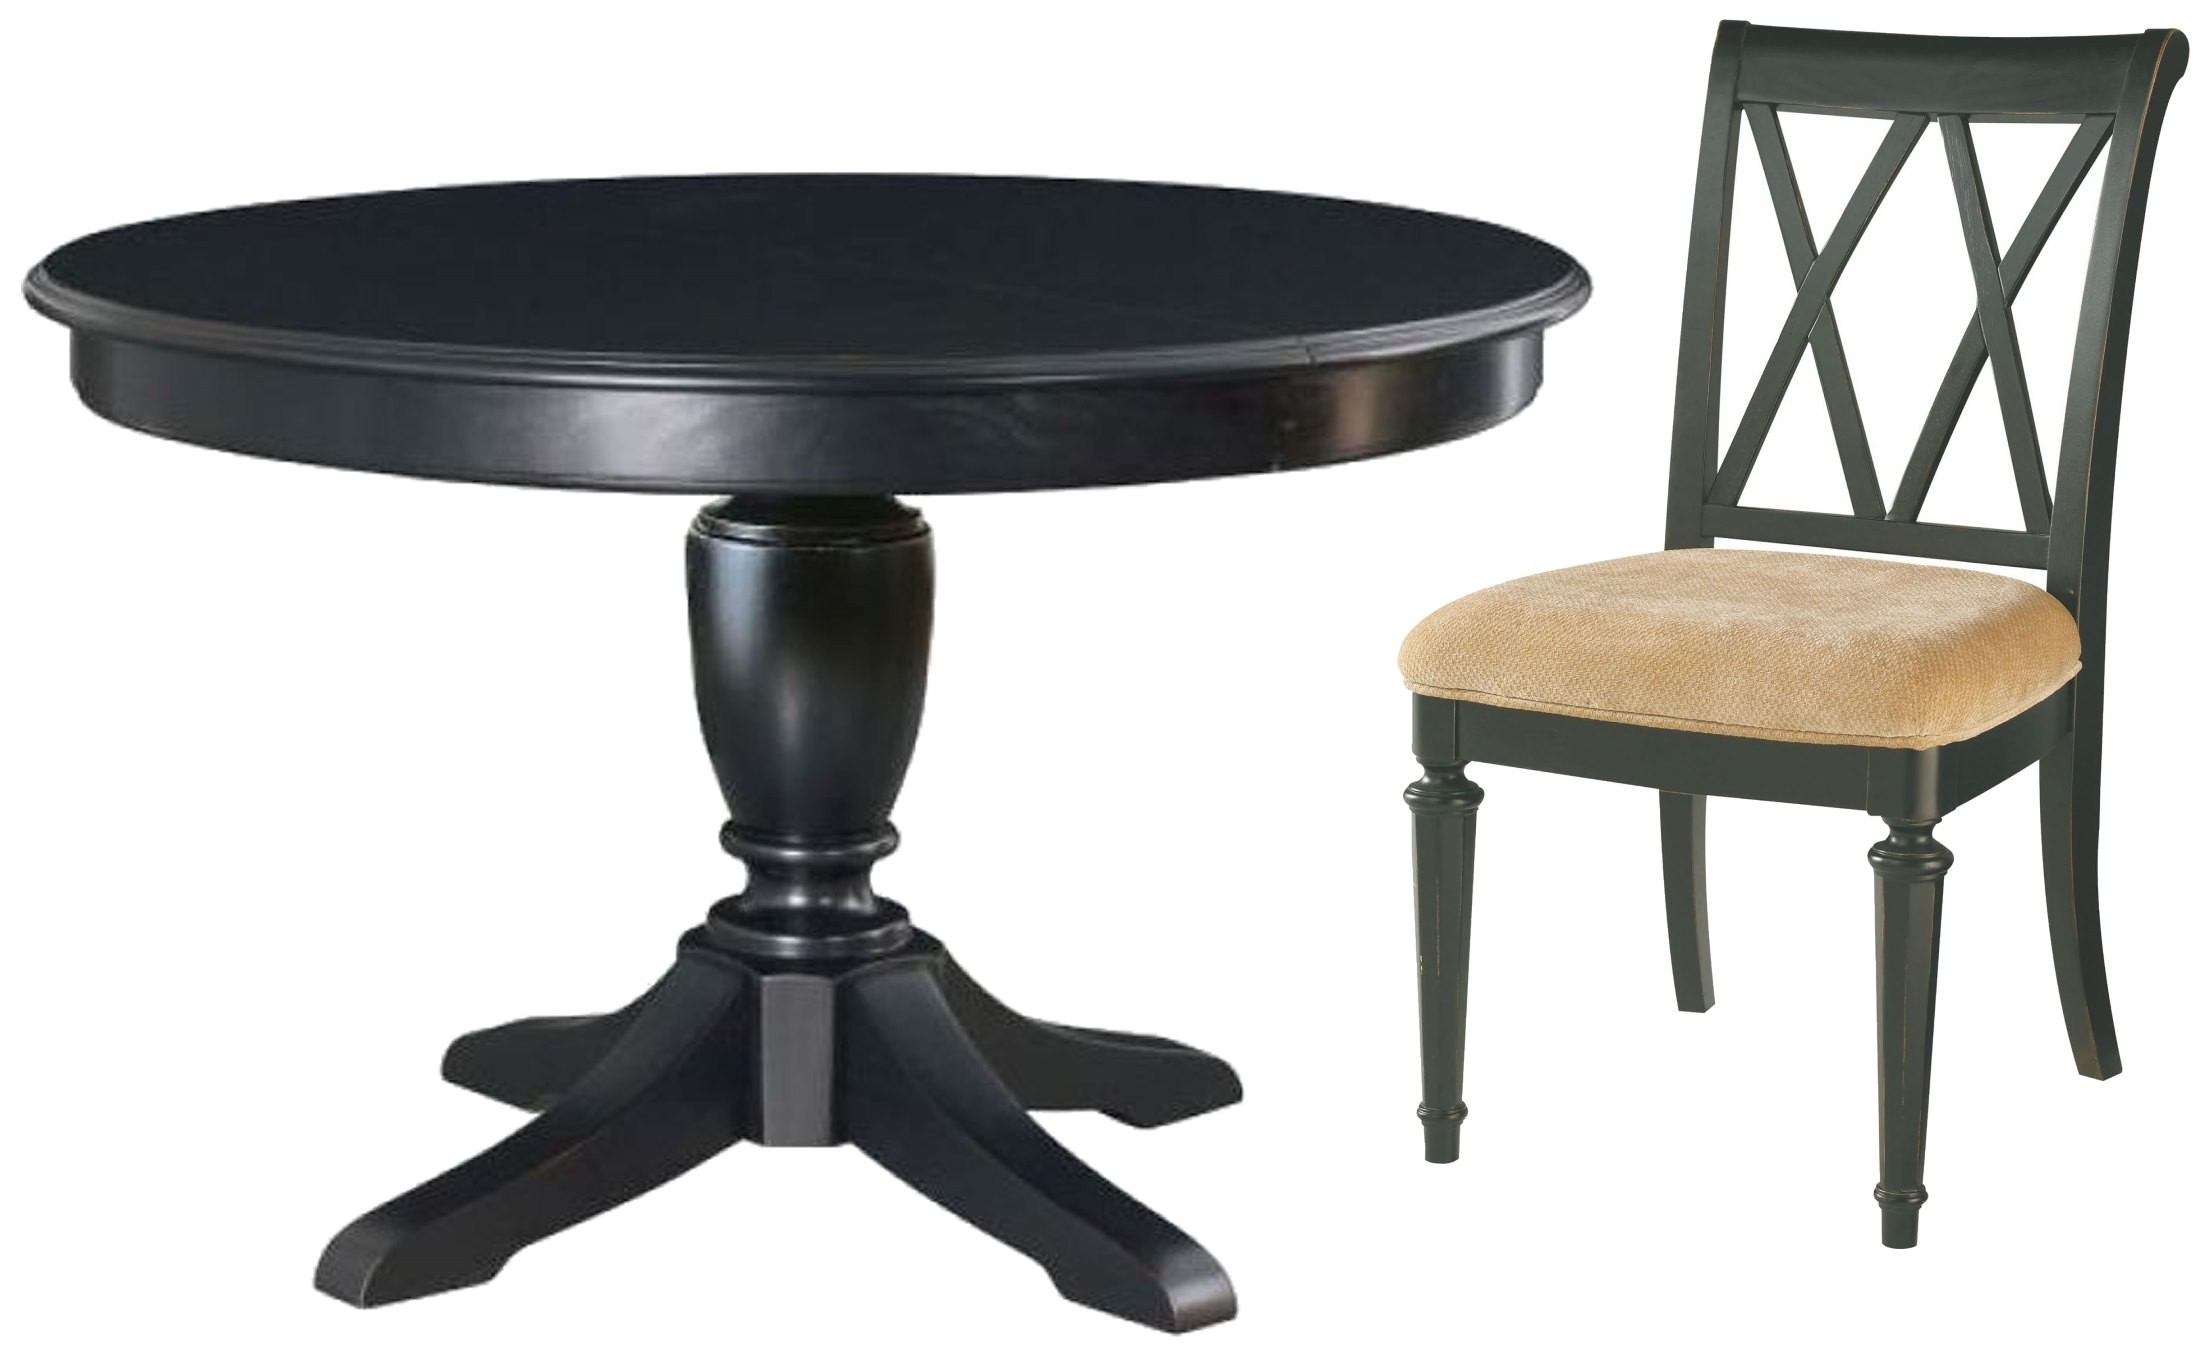 Camden Black Extendable Round Dining Table From American